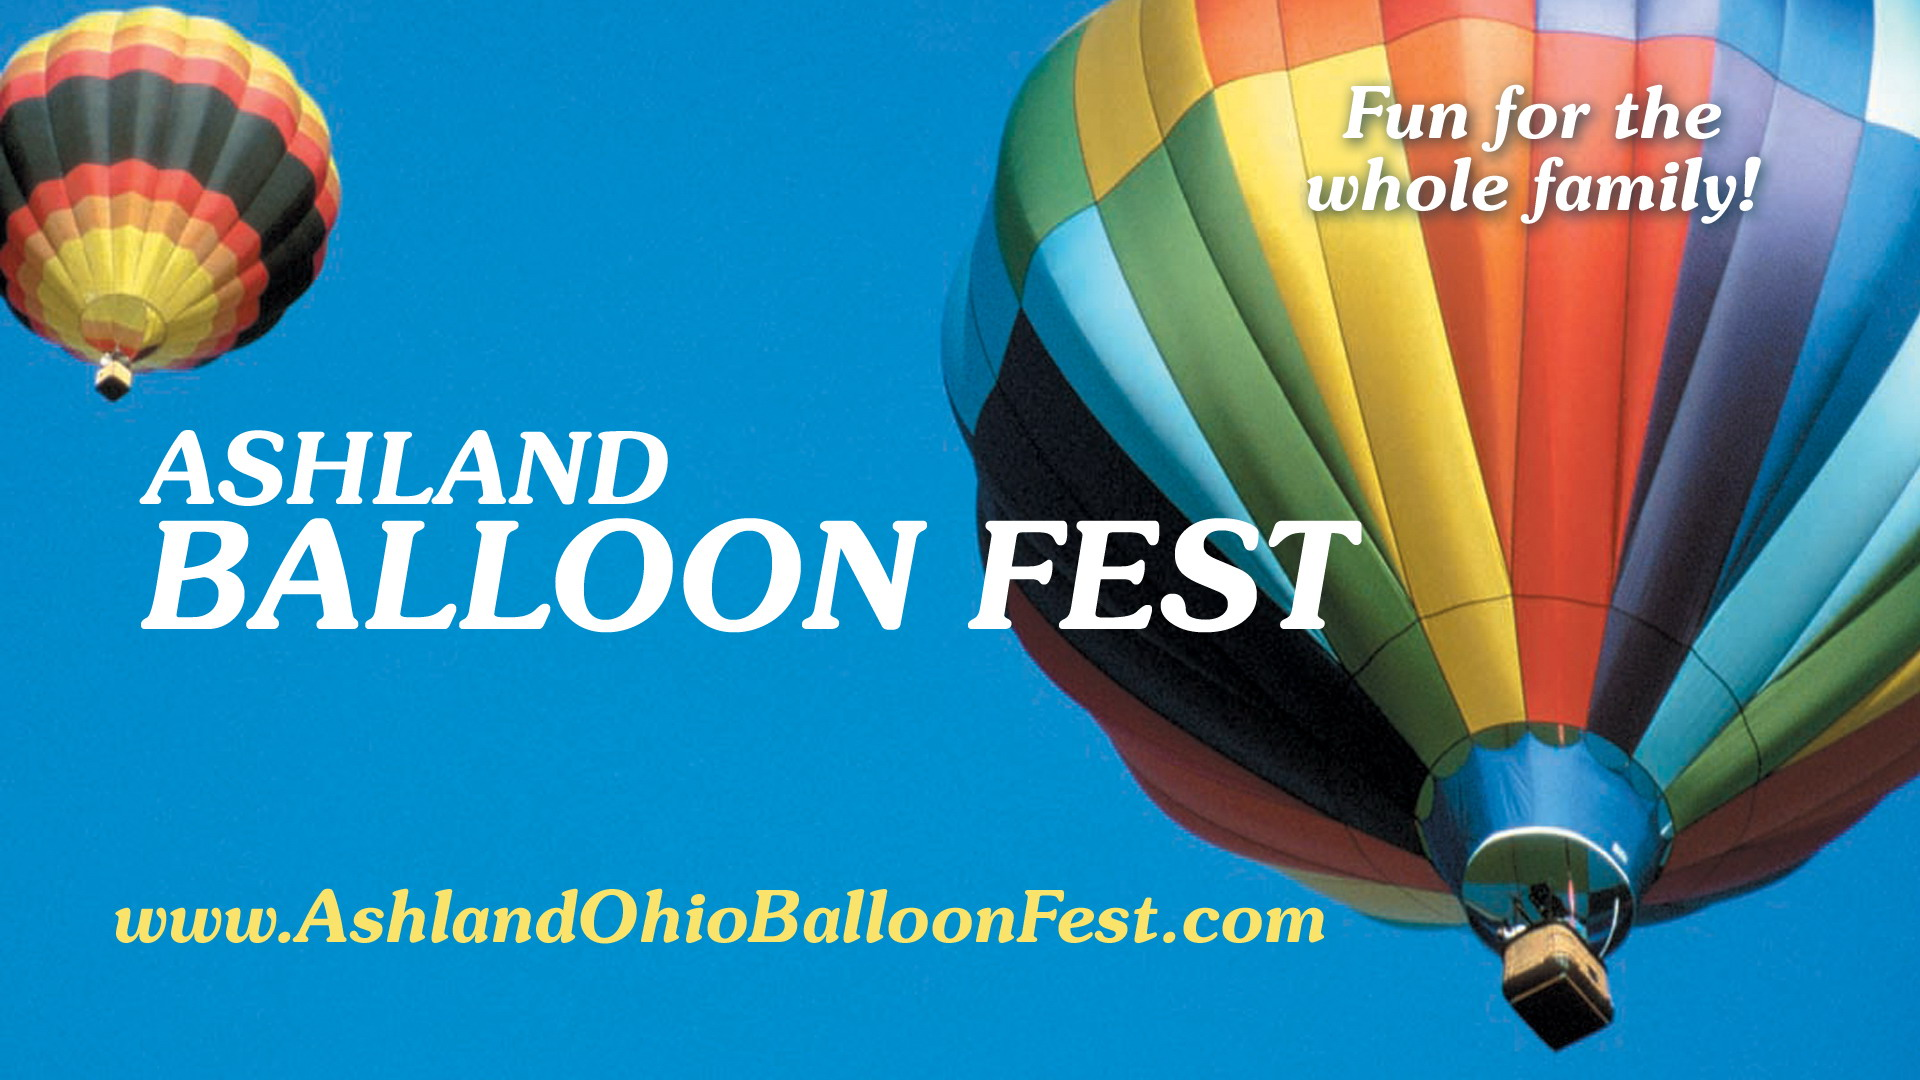 Ashland BalloonFest: High Flyin' Fun for the Whole Family!